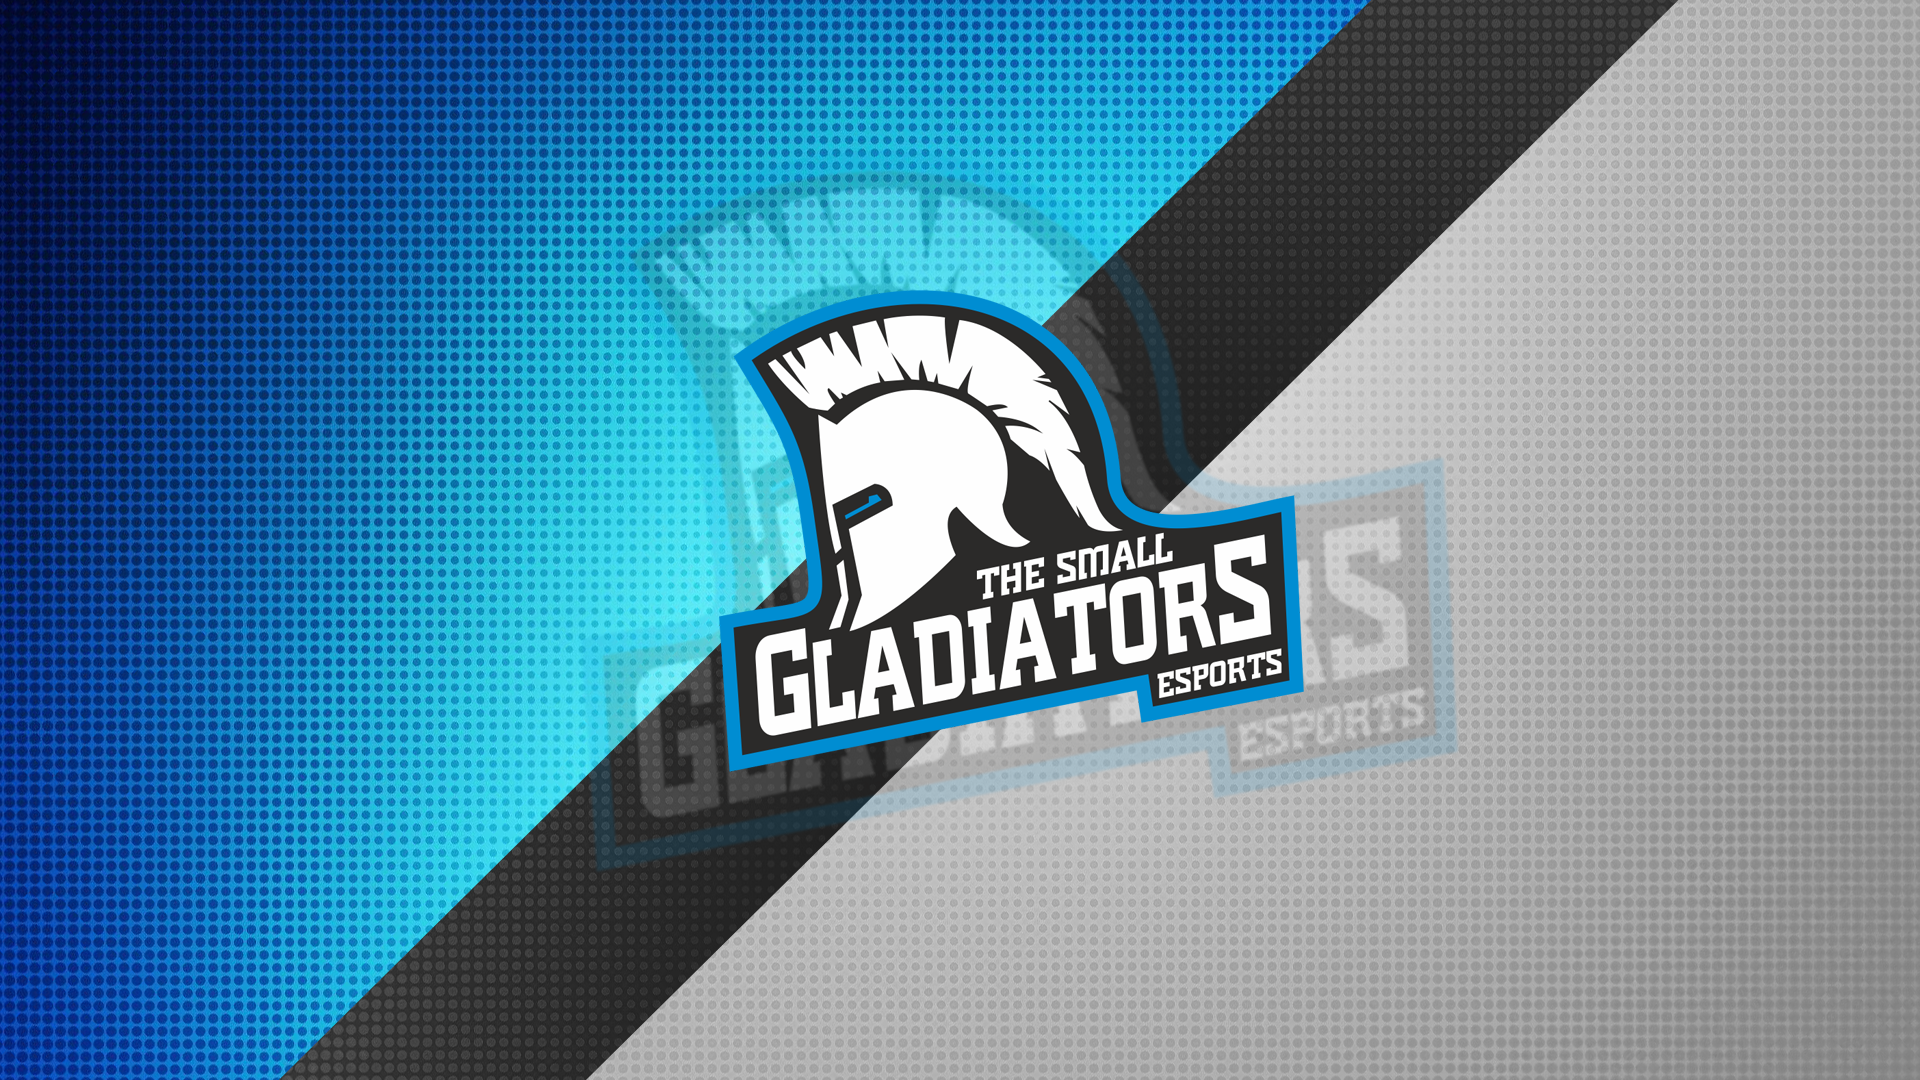 The Small Gladiators Wallpaper #5